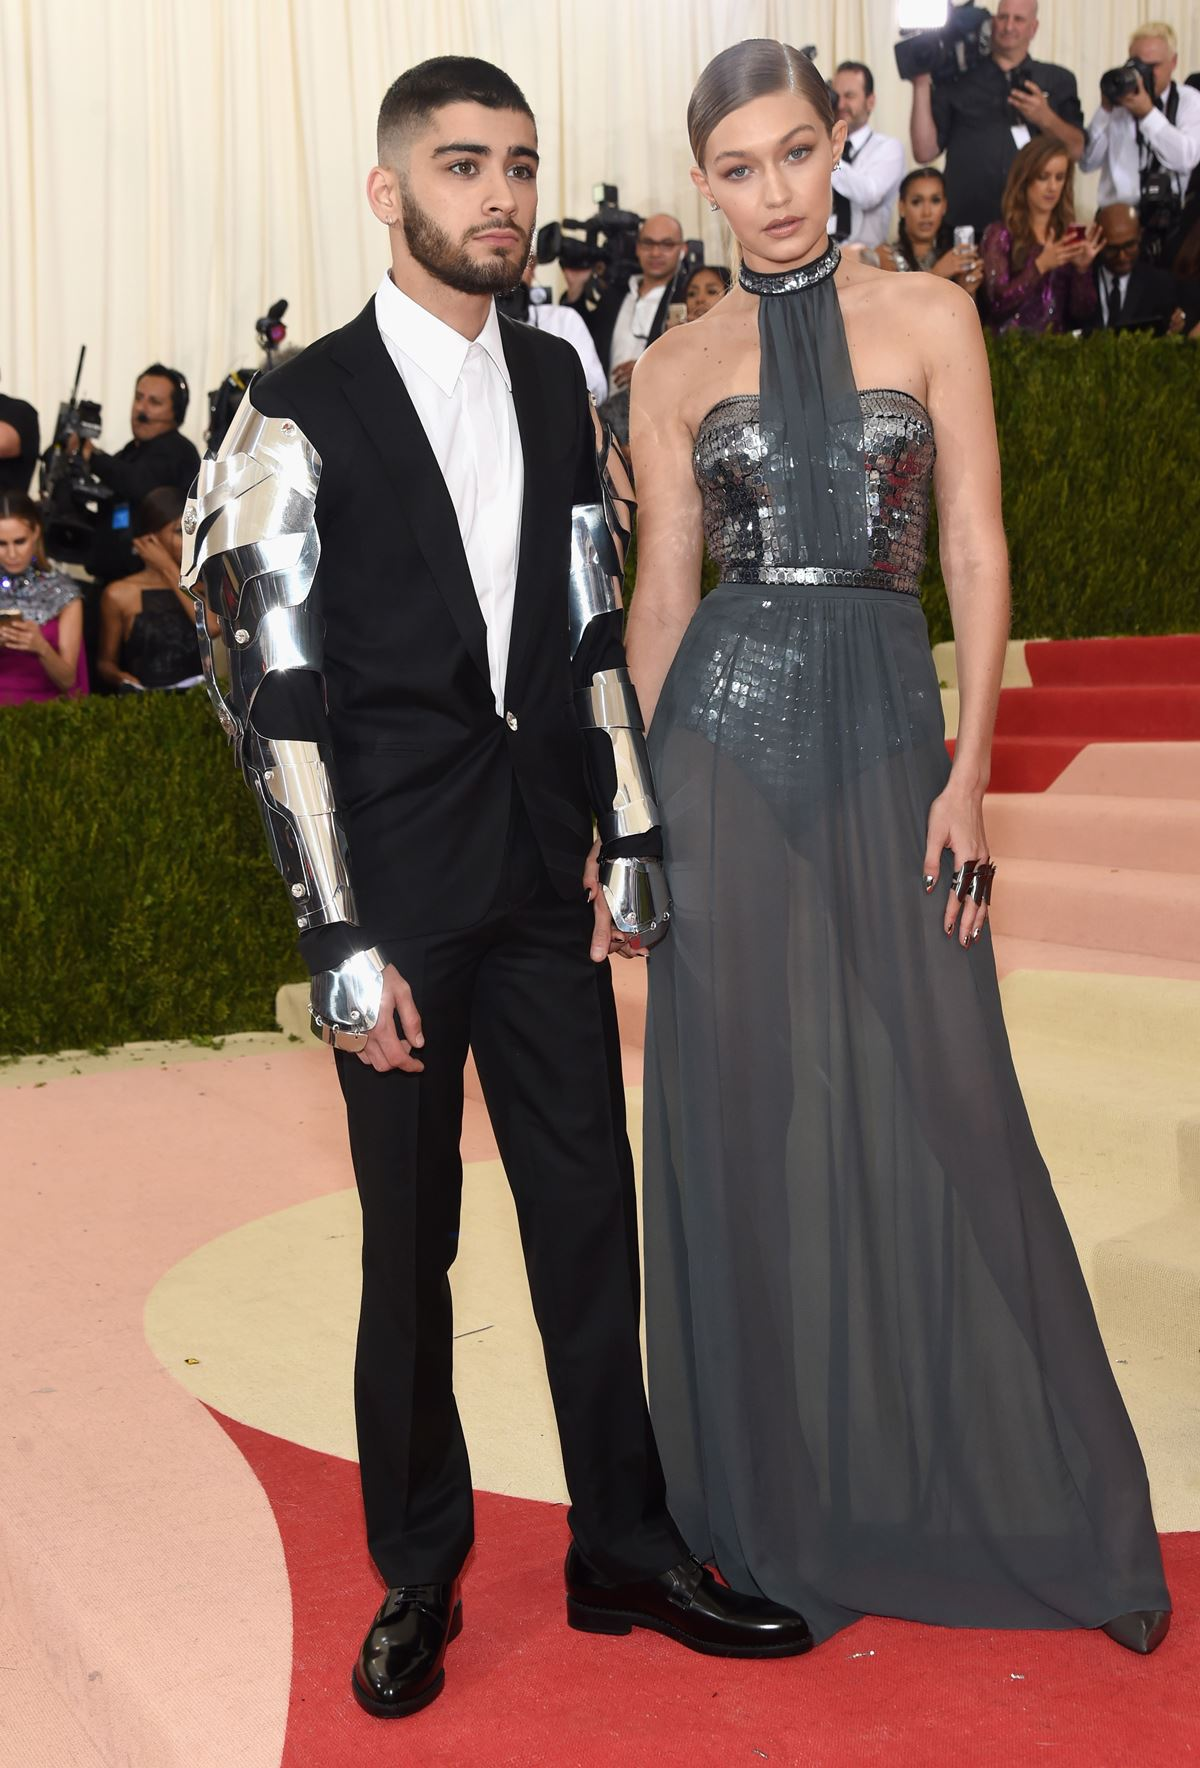 *Meet Zayn Malik! Meet Gigi Hadid!* We're getting MAJOR *The Jetsons* vibes from these two...